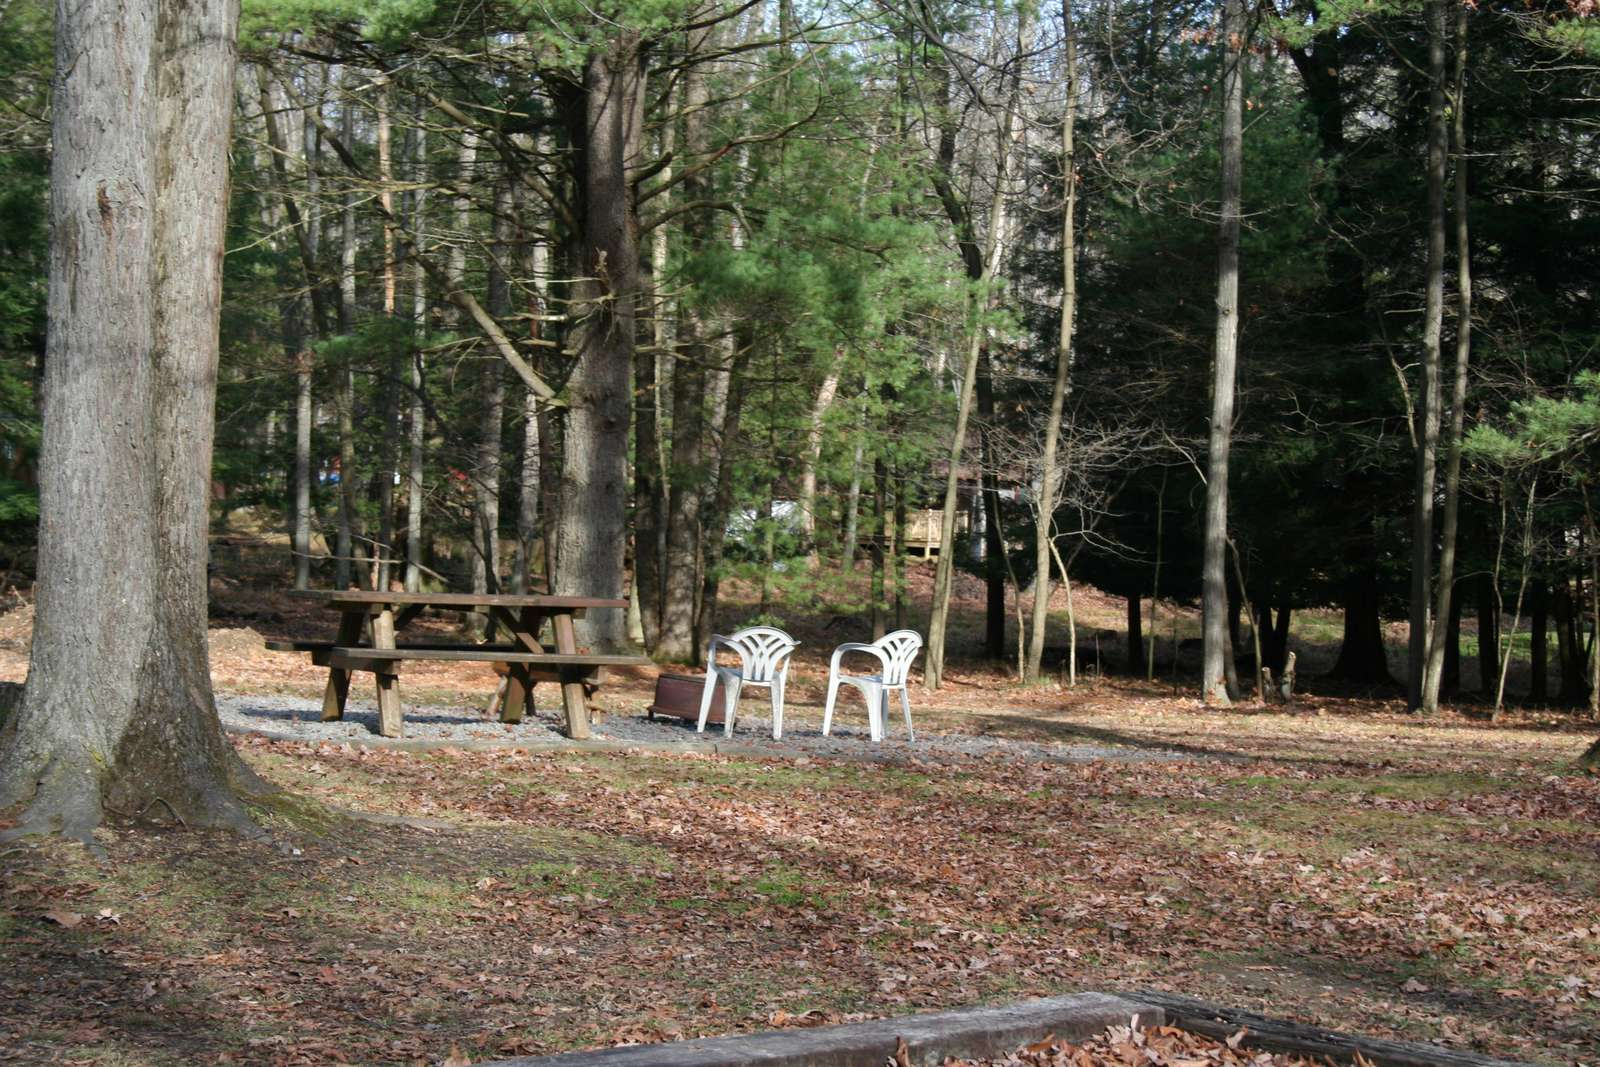 Picnic area at Old Hickory Cabin.